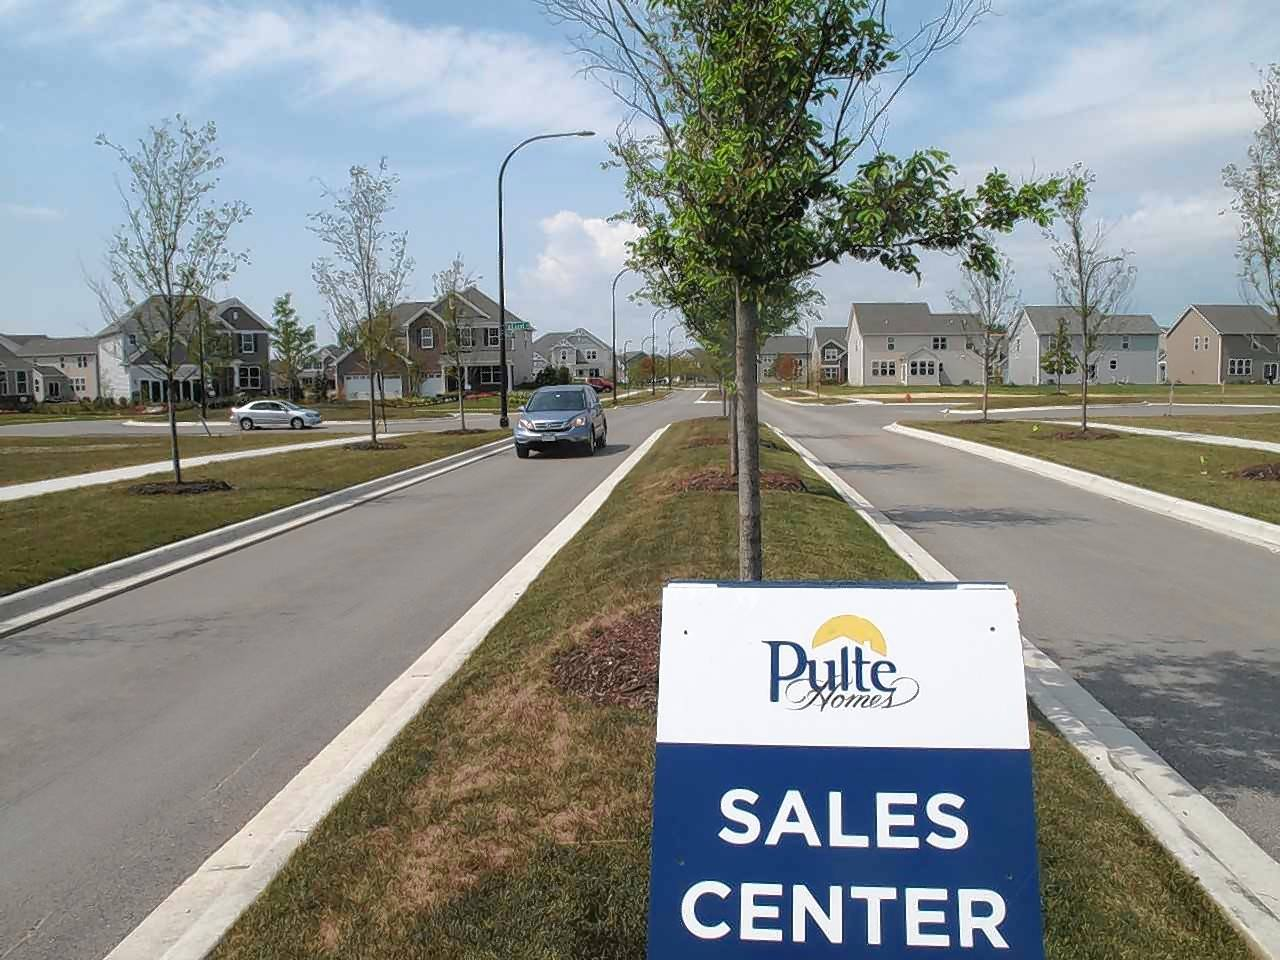 The Atwater subdivision on Naperville's northwest side is one area among 58 census blocks where the population will be counted as part of a special census beginning Friday. The count is expected to conclude in early April.